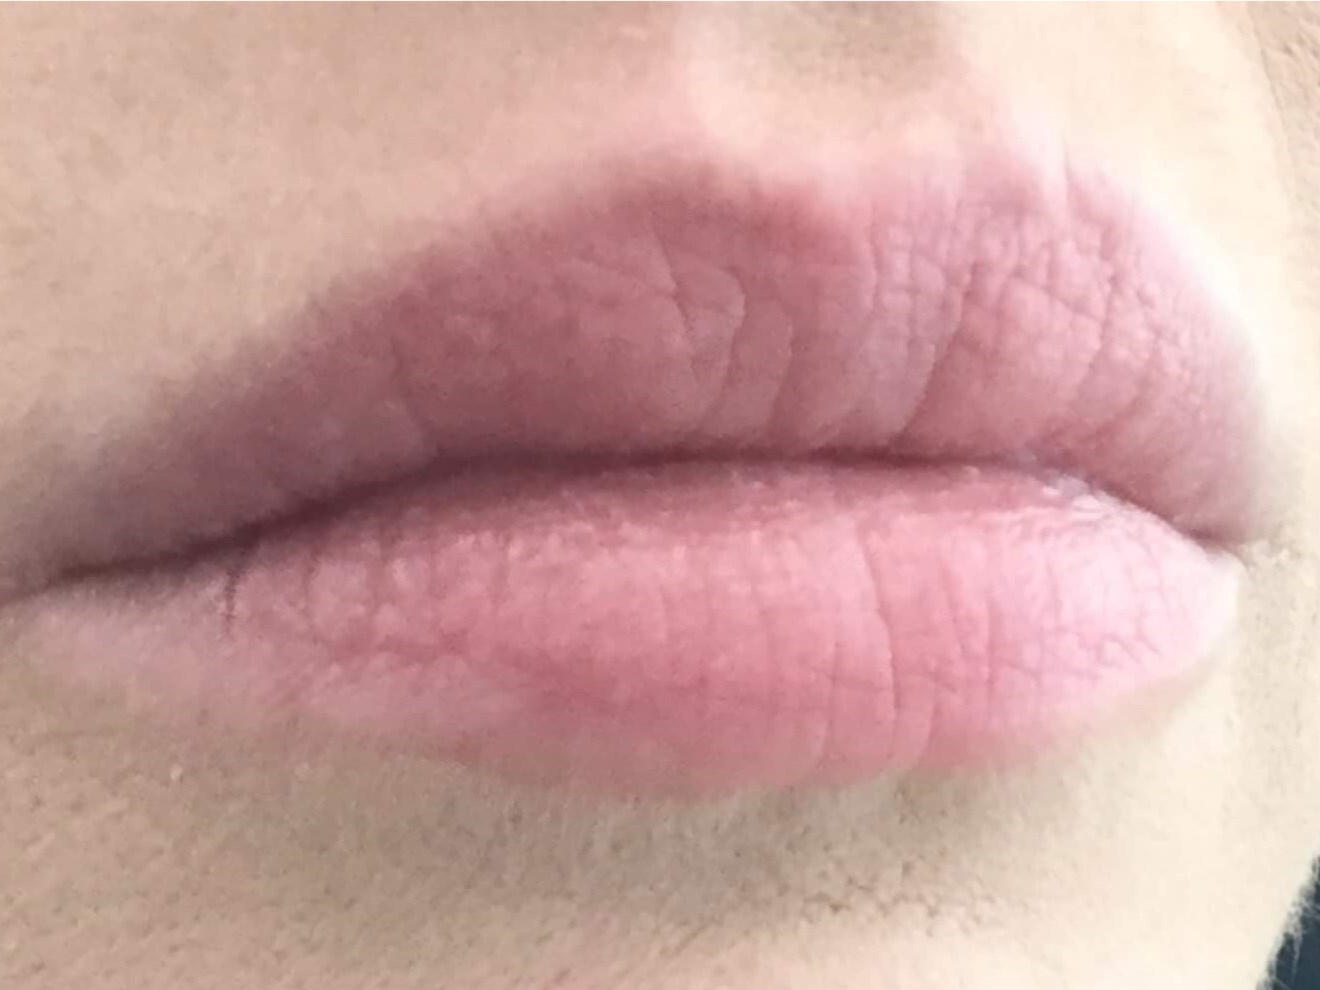 DALLAS WOMAN HAS LIP AUGMENTATION USING JUVEDERM ULTRA PLUS